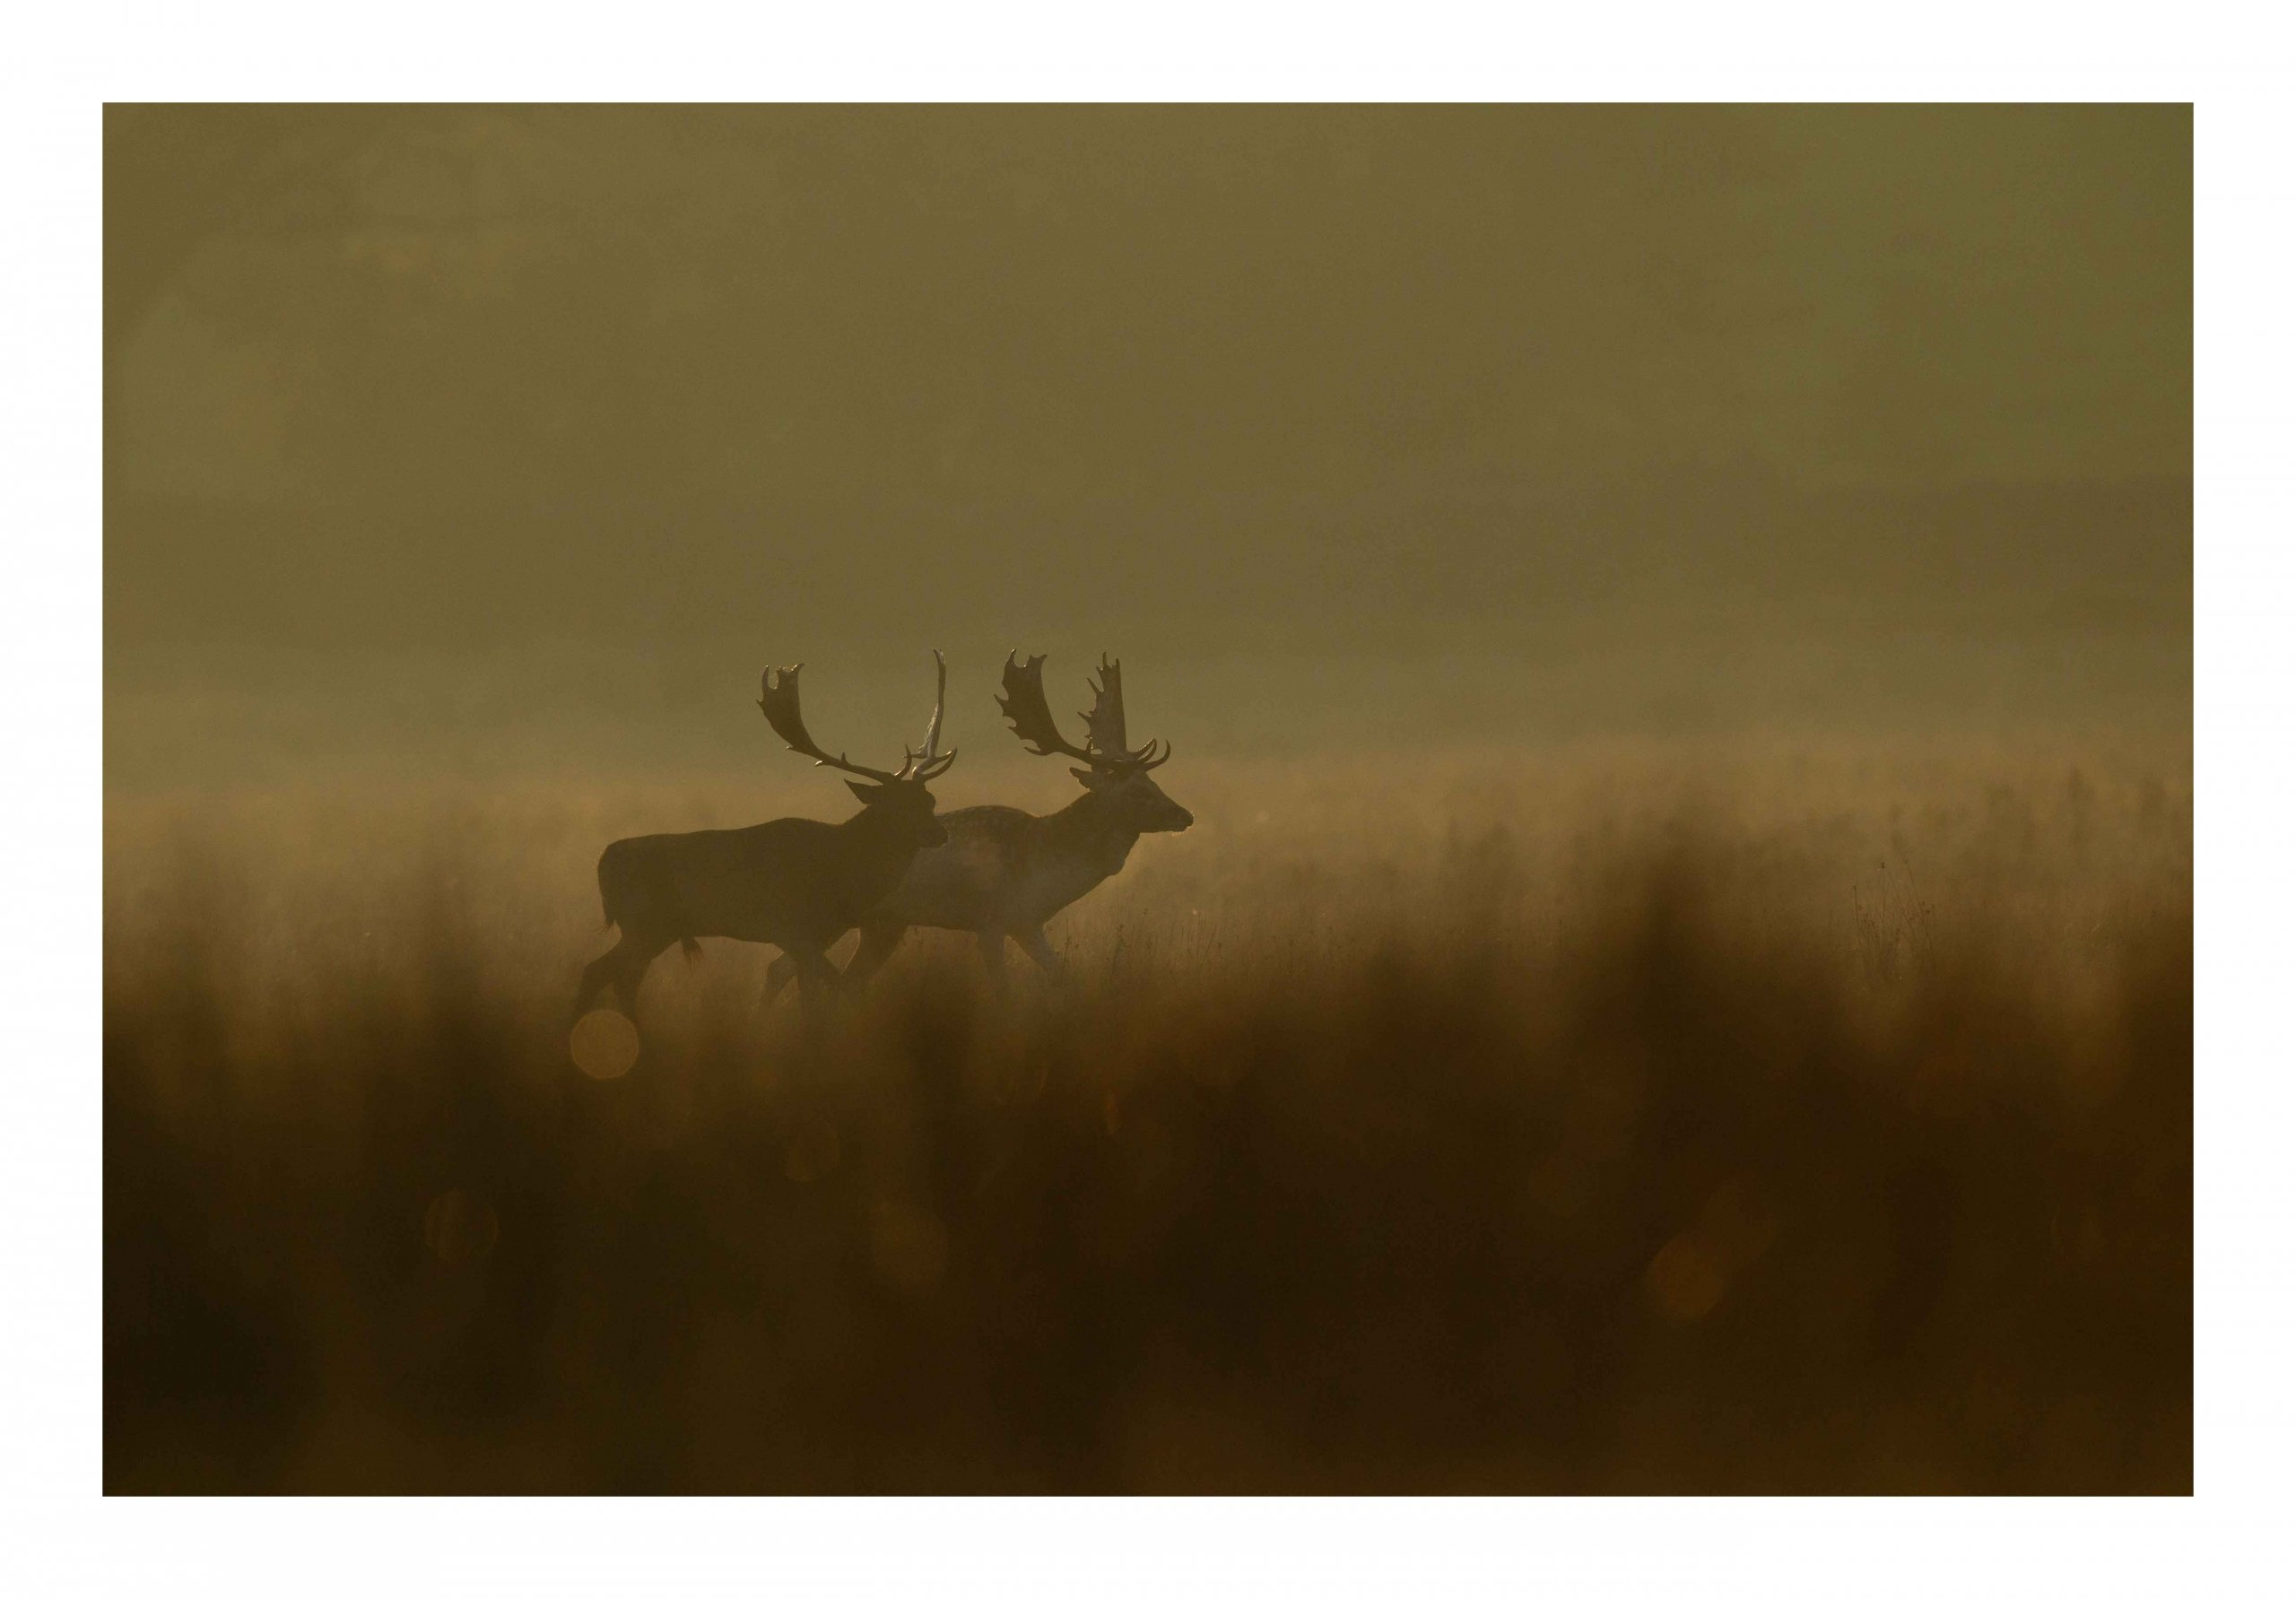 Parallel walking fallow deer at sunrise